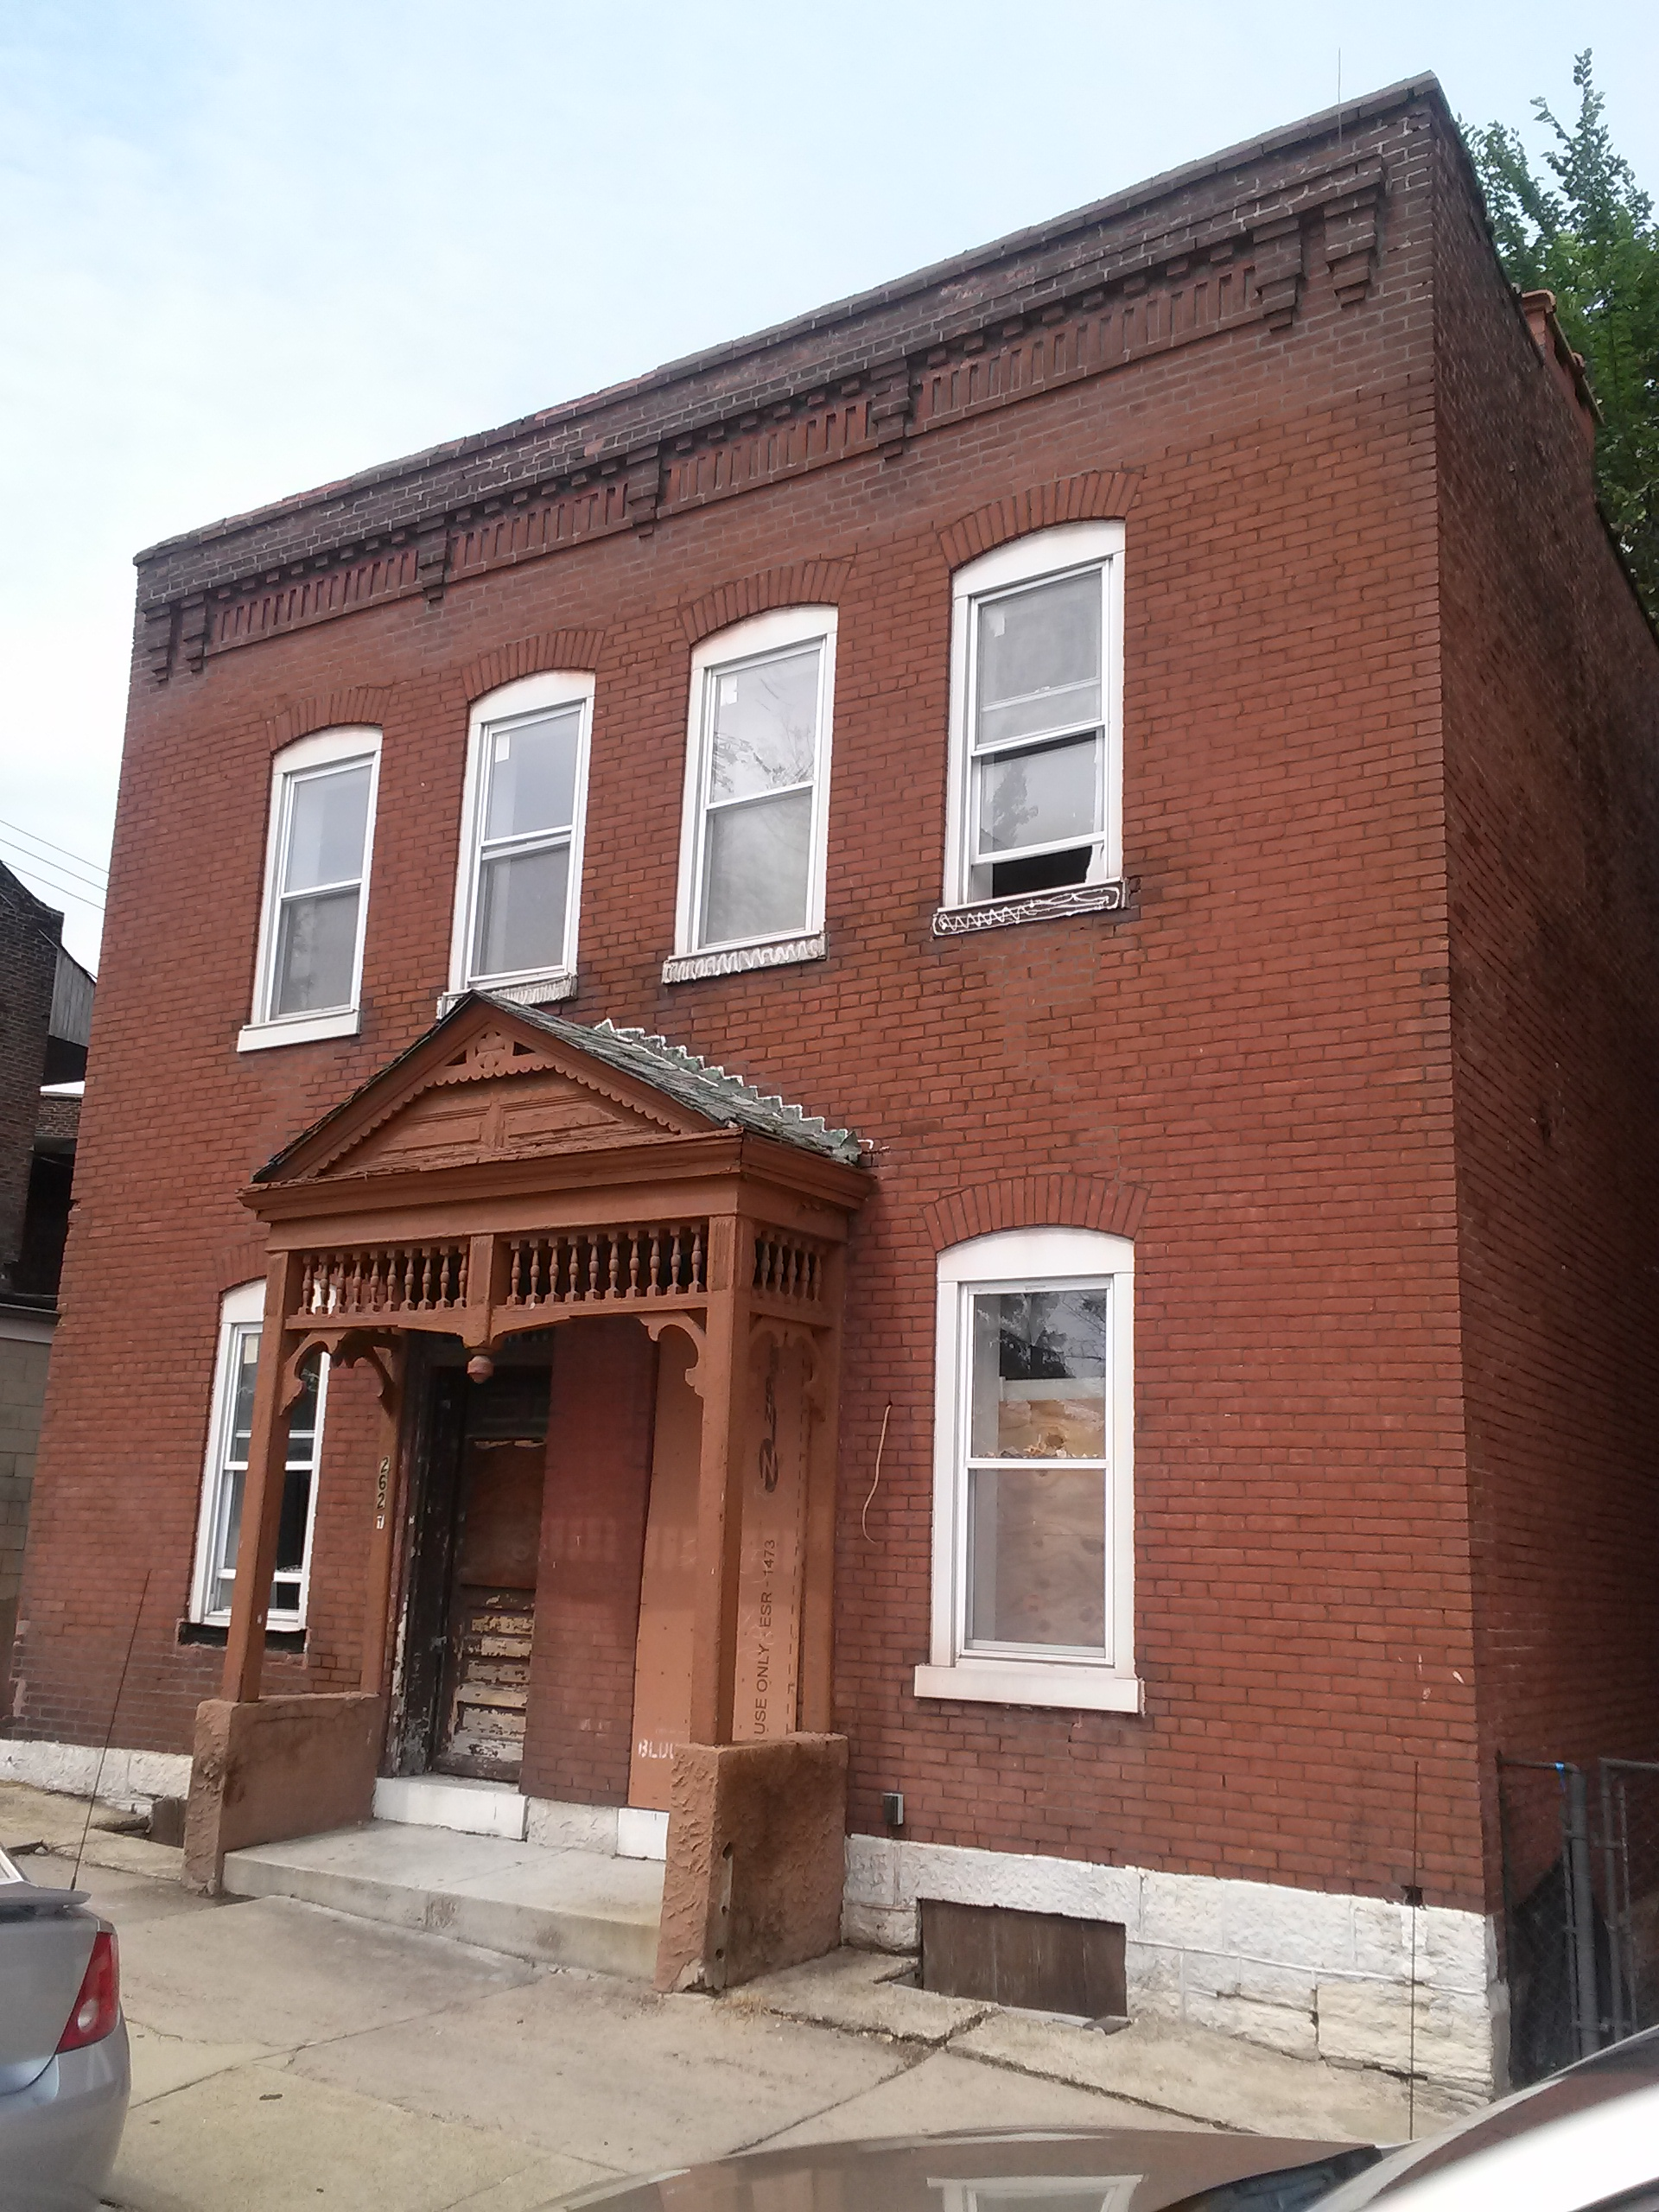 Messiah Church/Rise LIHTC project - St. Louis, MO